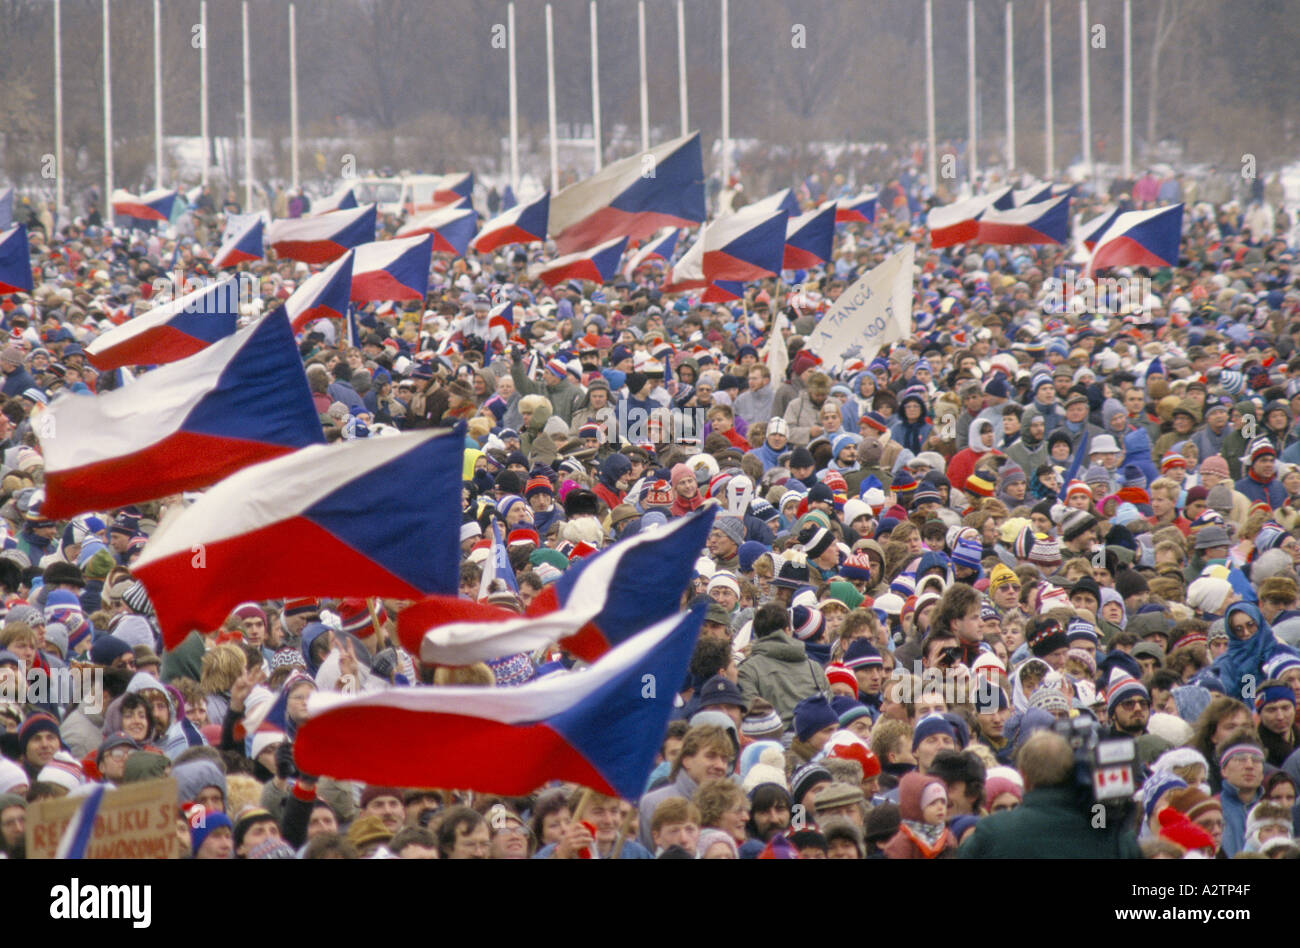 part of the 1 2 million strong crowd at demo during the velvet revolution 1989 - Stock Image